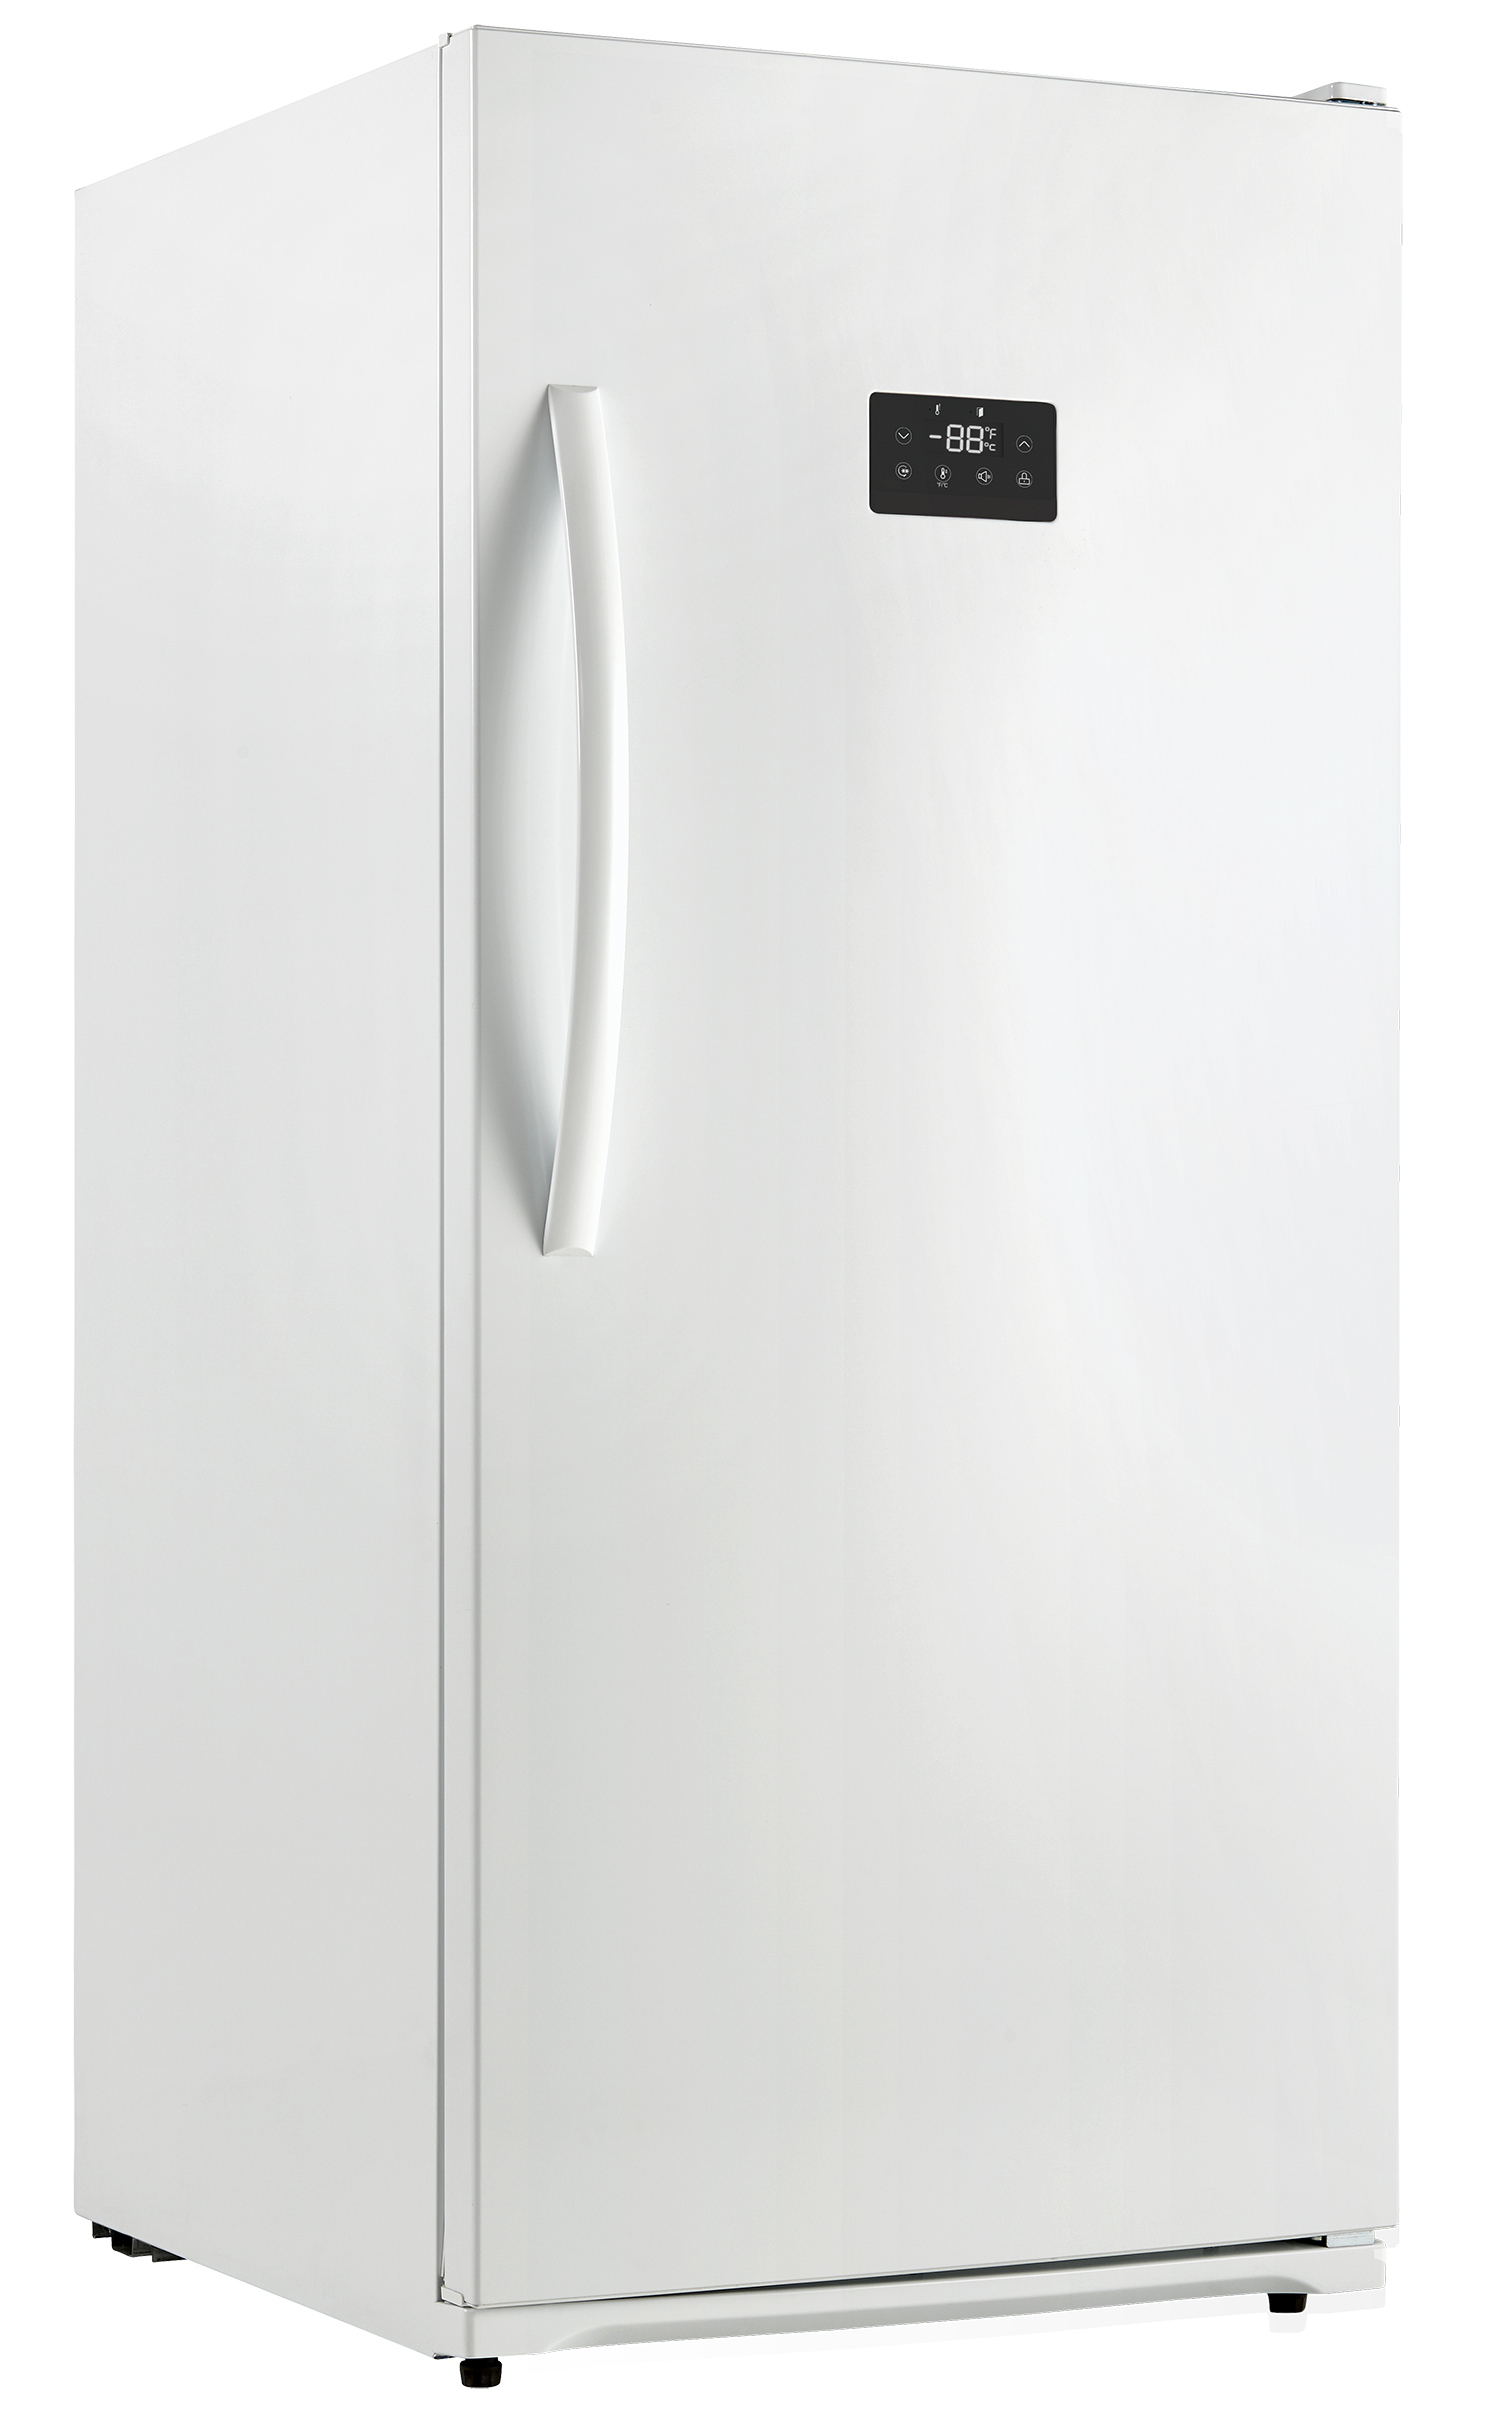 Small Stand Up Freezer Duf138e1wdd Danby Designer 13 8 Cu Ft Upright Freezer En Us